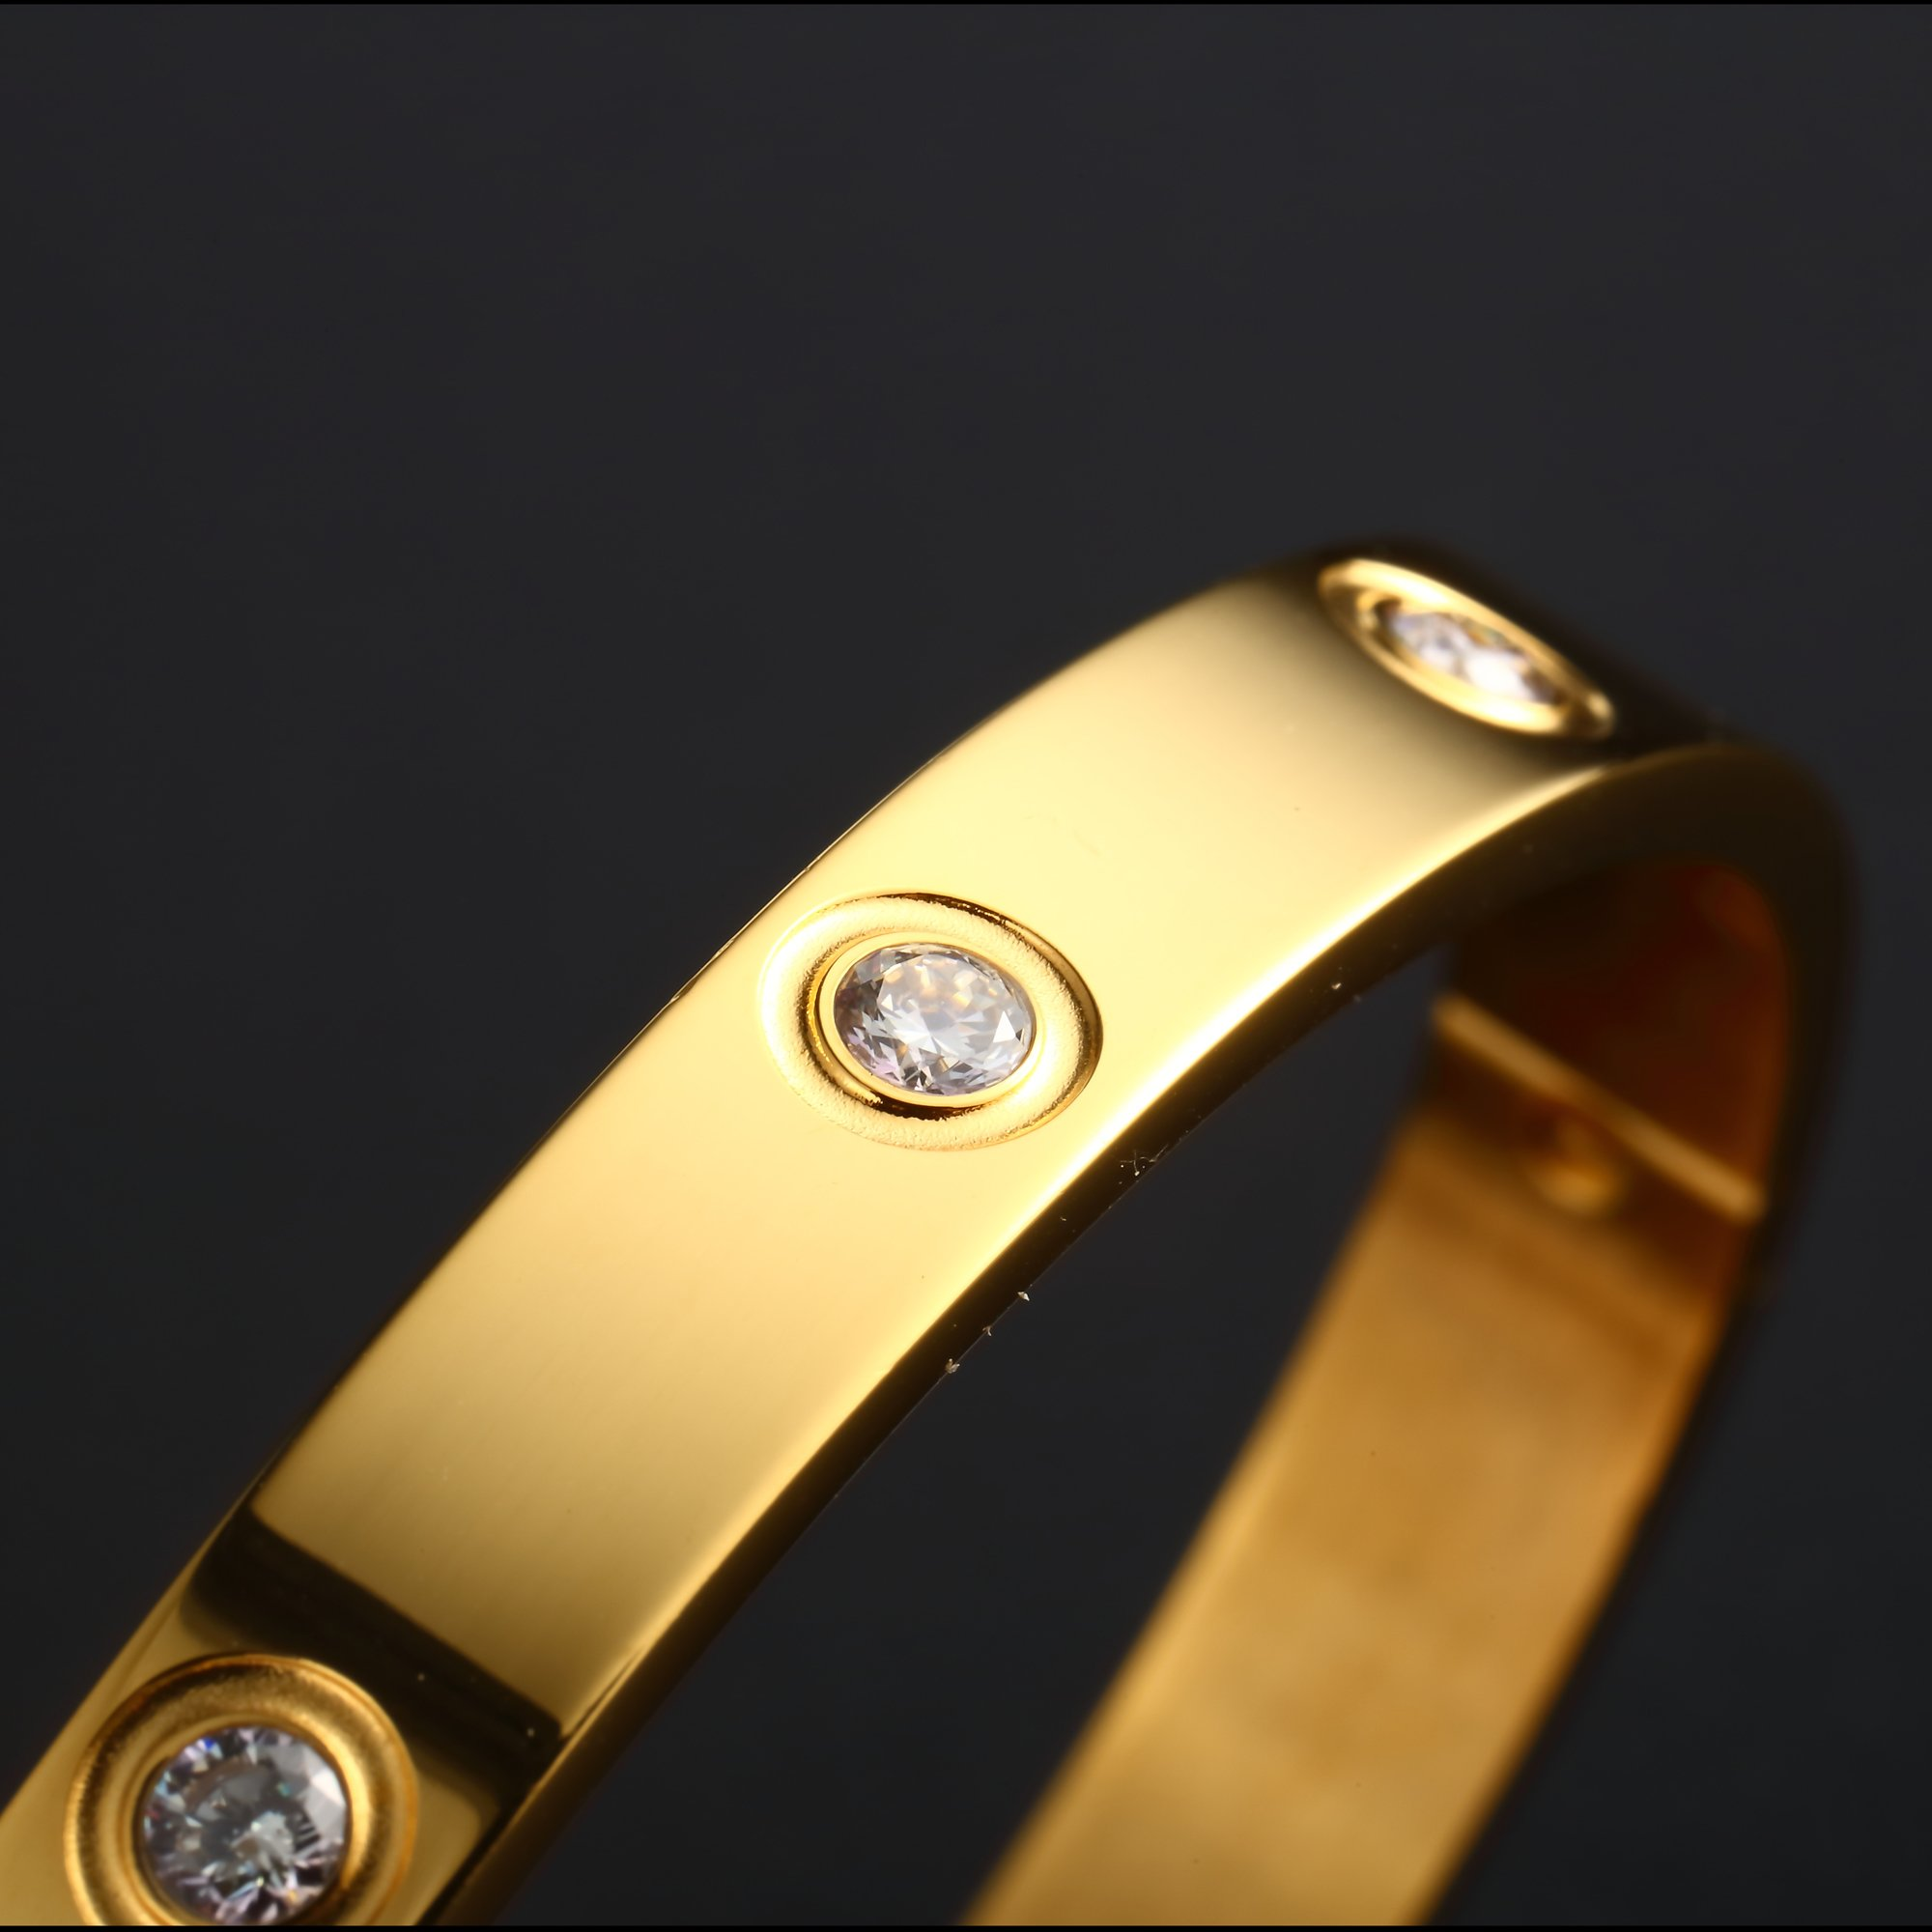 MVCOLEDY Jewelry 18 K Gold Bangle Bracelet Set in Stone Hinged Stainless Steel Crystal Bangle Women Small Size 6.7'' by MVCOLEDY (Image #4)